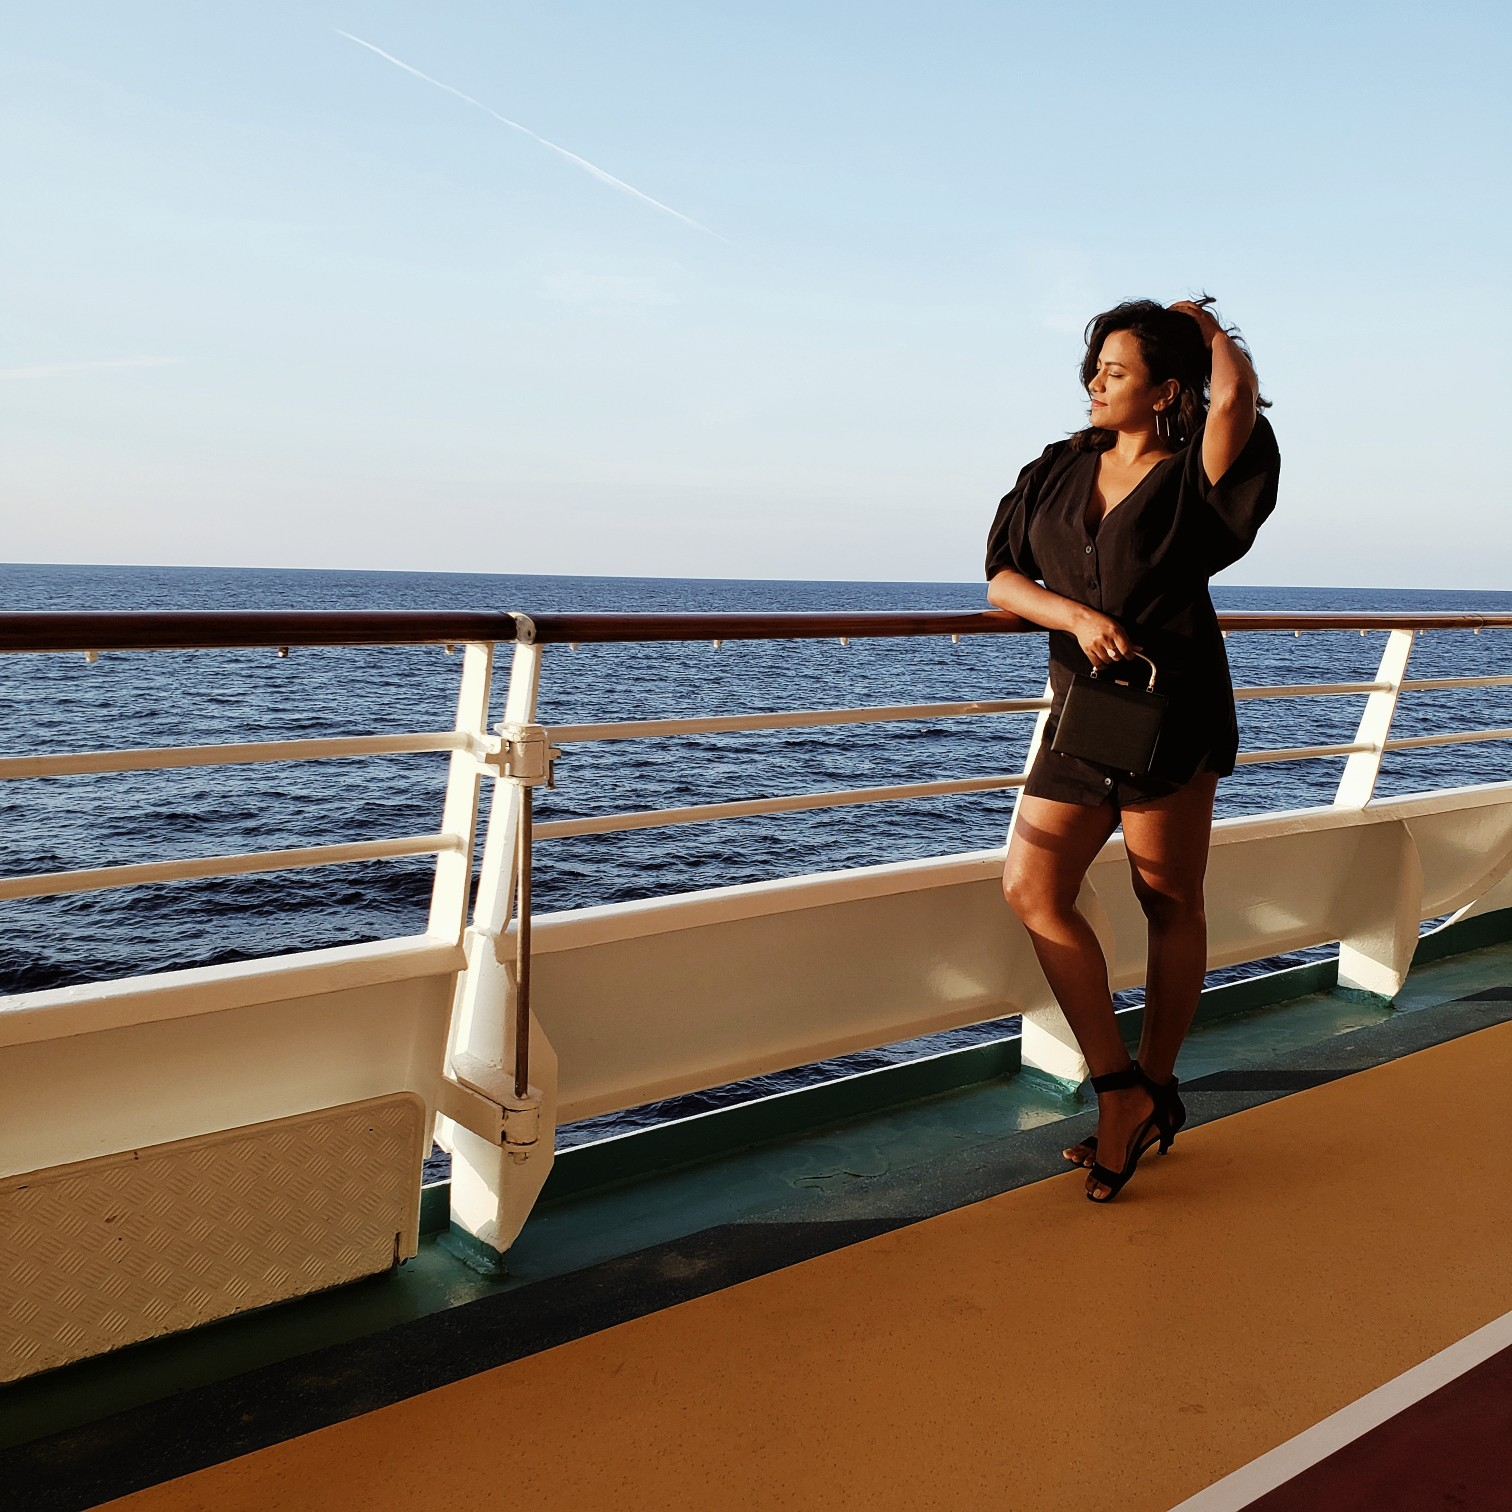 Travel Blogger Afroza Khan on the Royal Caribbean Mariner of the Seas cruise during golden hour